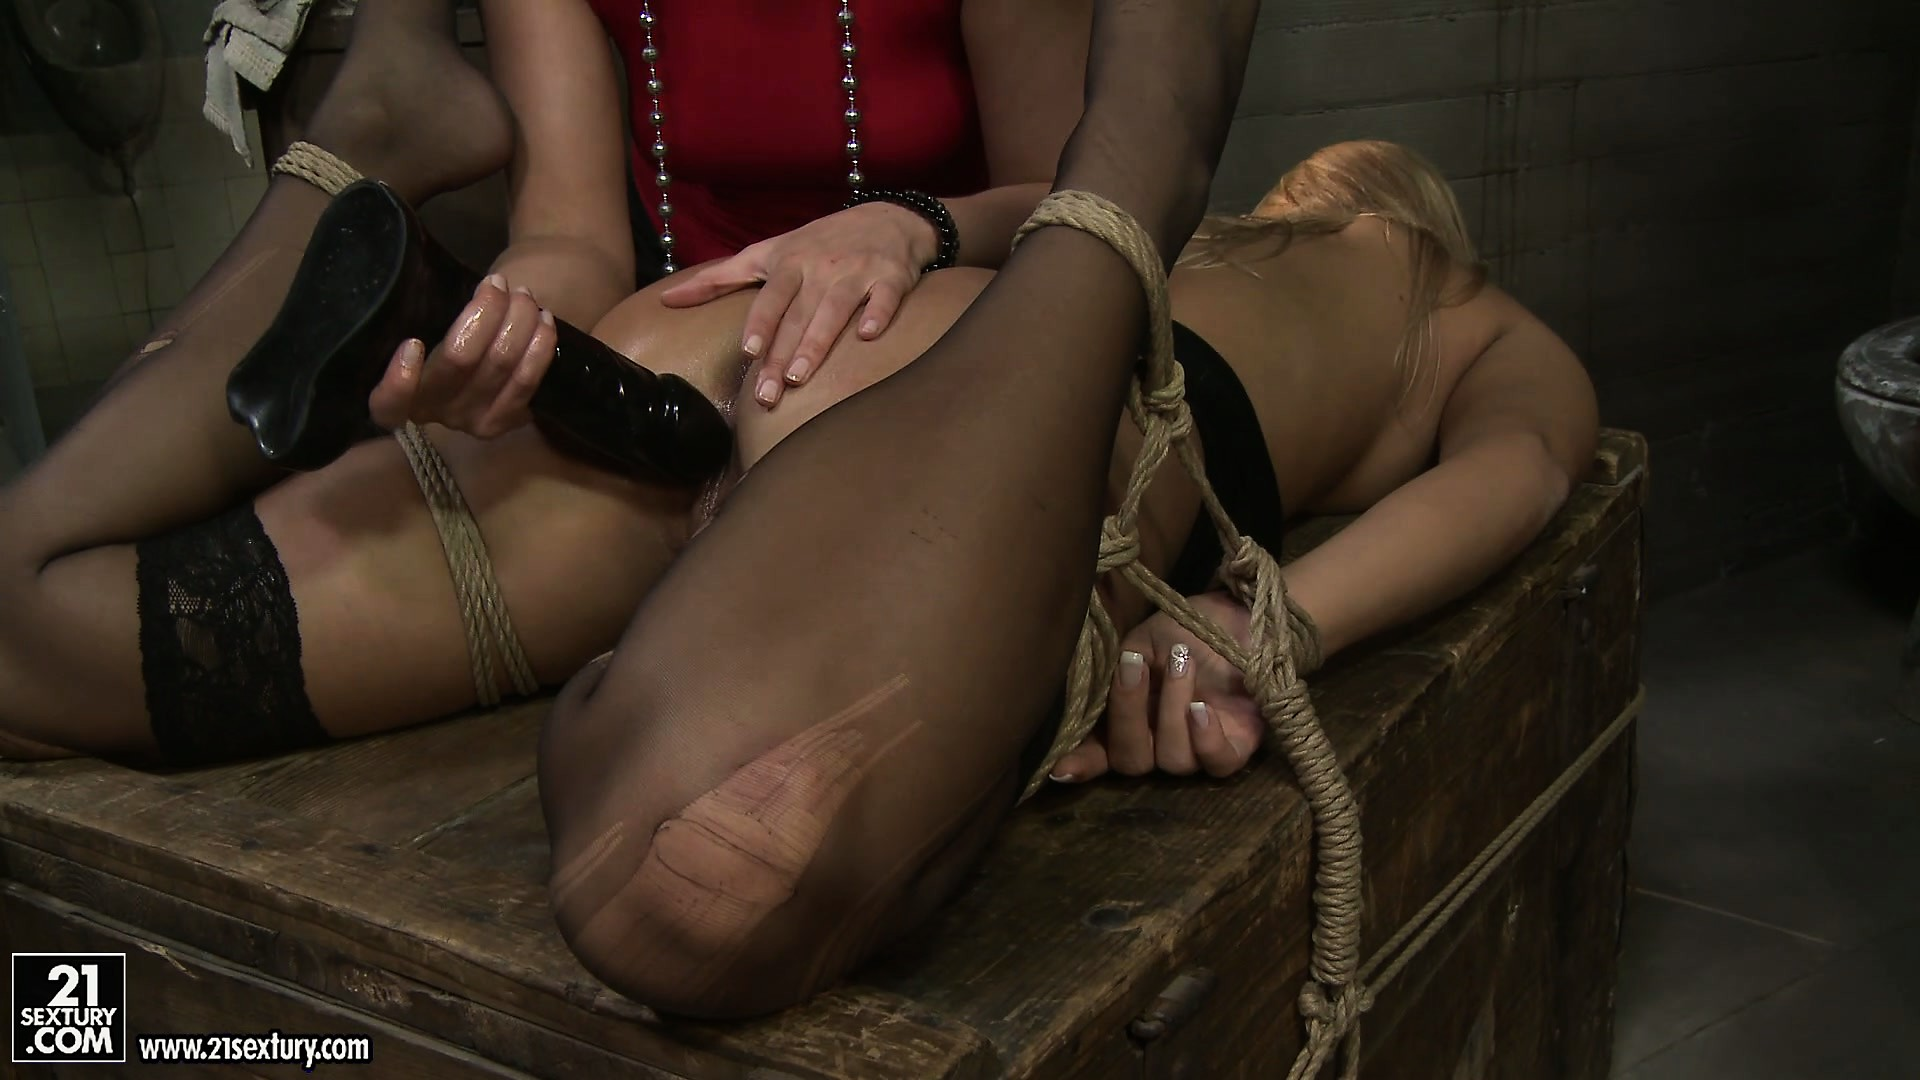 Porn Tube of Kathia Drills The Blonde's Twat With A Black Dildo And Moans Of Pleasure Fill The Room